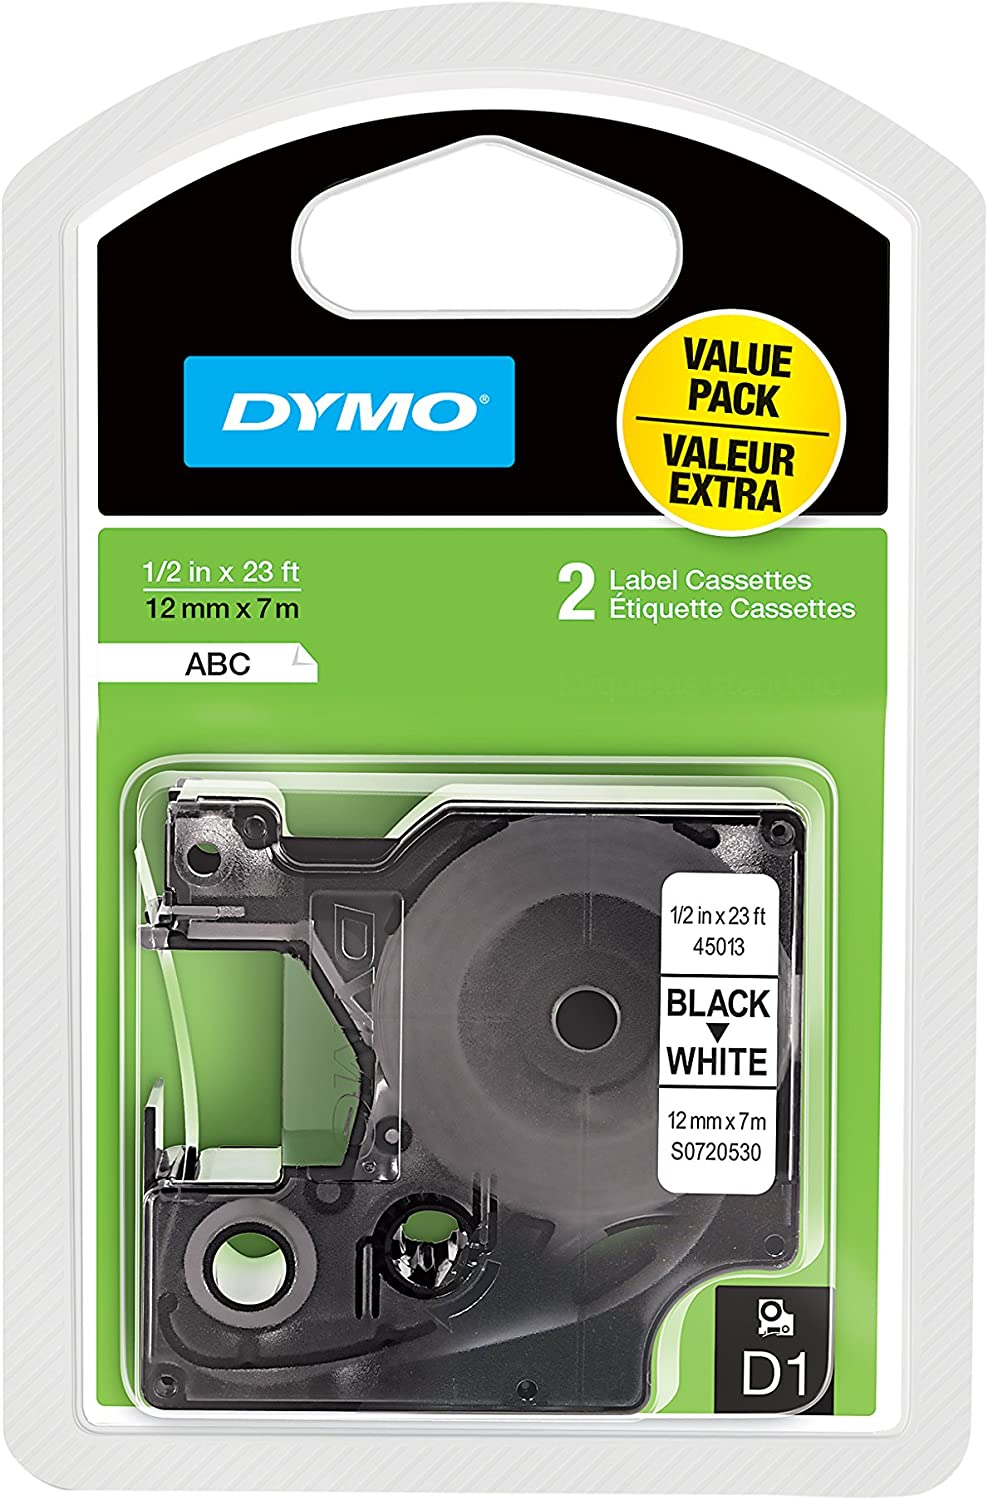 DYMO Standard D1 Self-Adhesive Polyester Tape for Label Makers, 1/2-inch, Black Print on White, 23-foot Cartridge, 2-Pack (1926208)